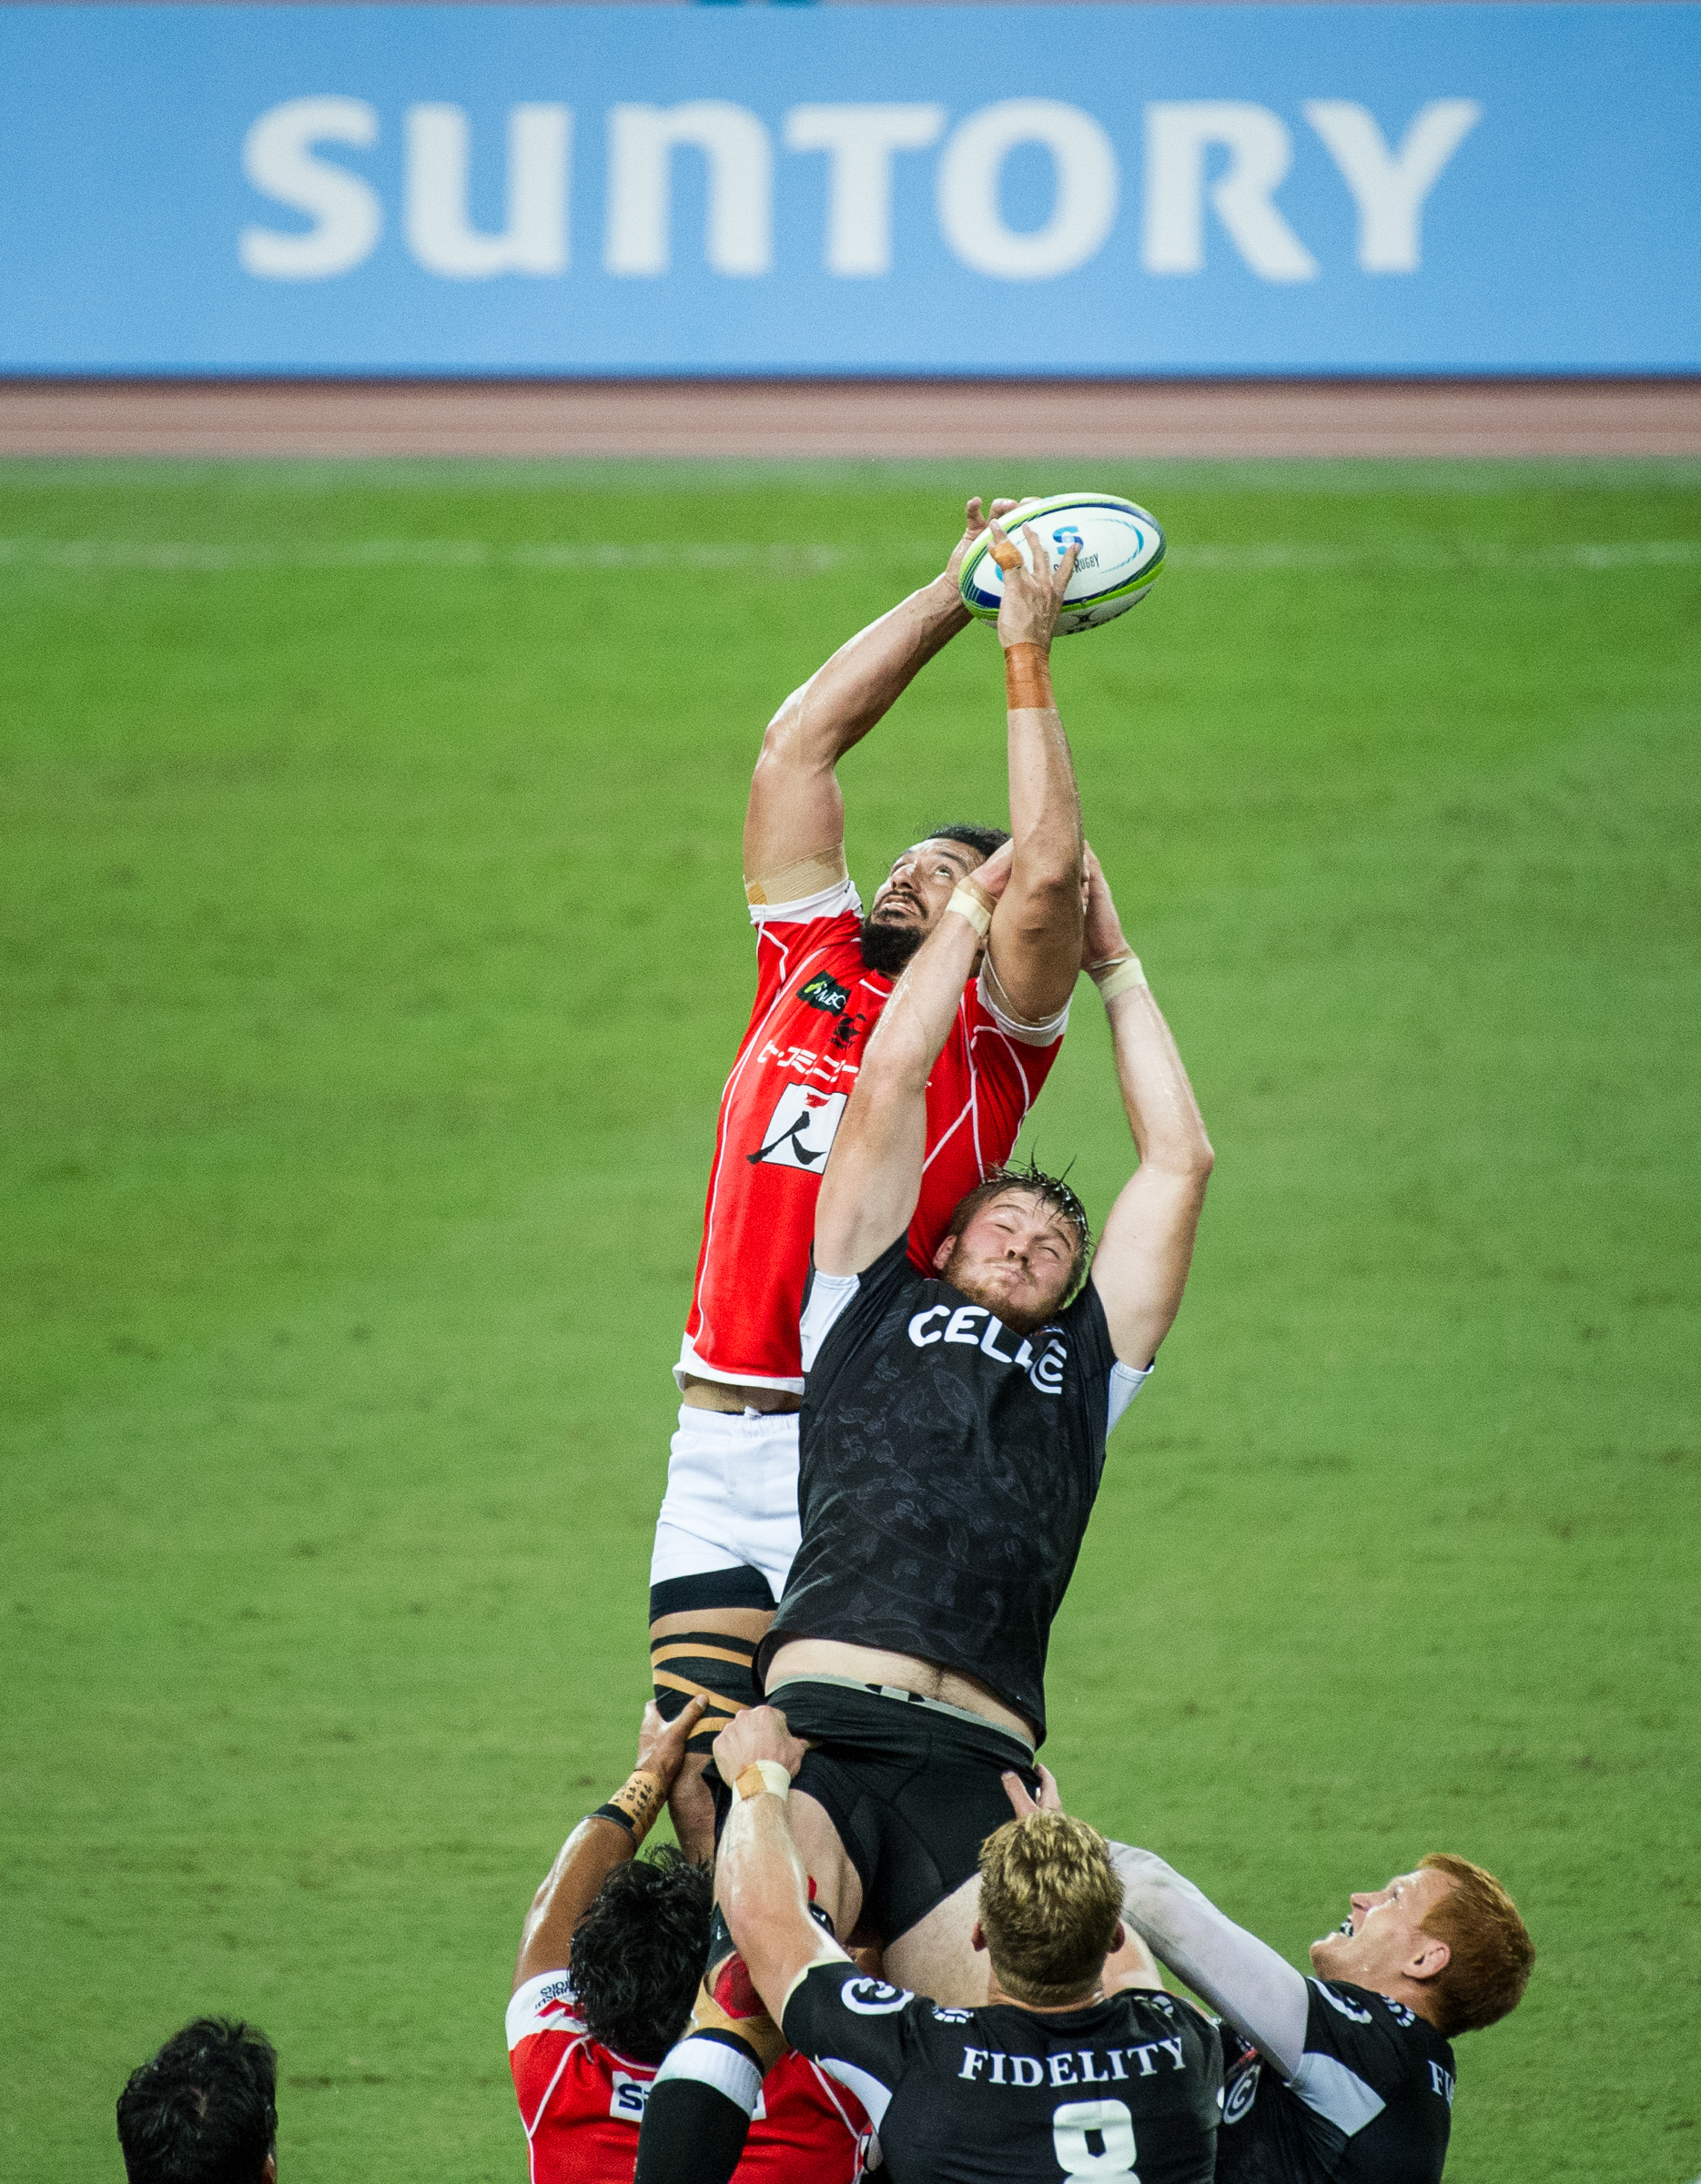 A South African and Japanese player at a line out during a Super Rugby match at the Singapore Sports Hub.